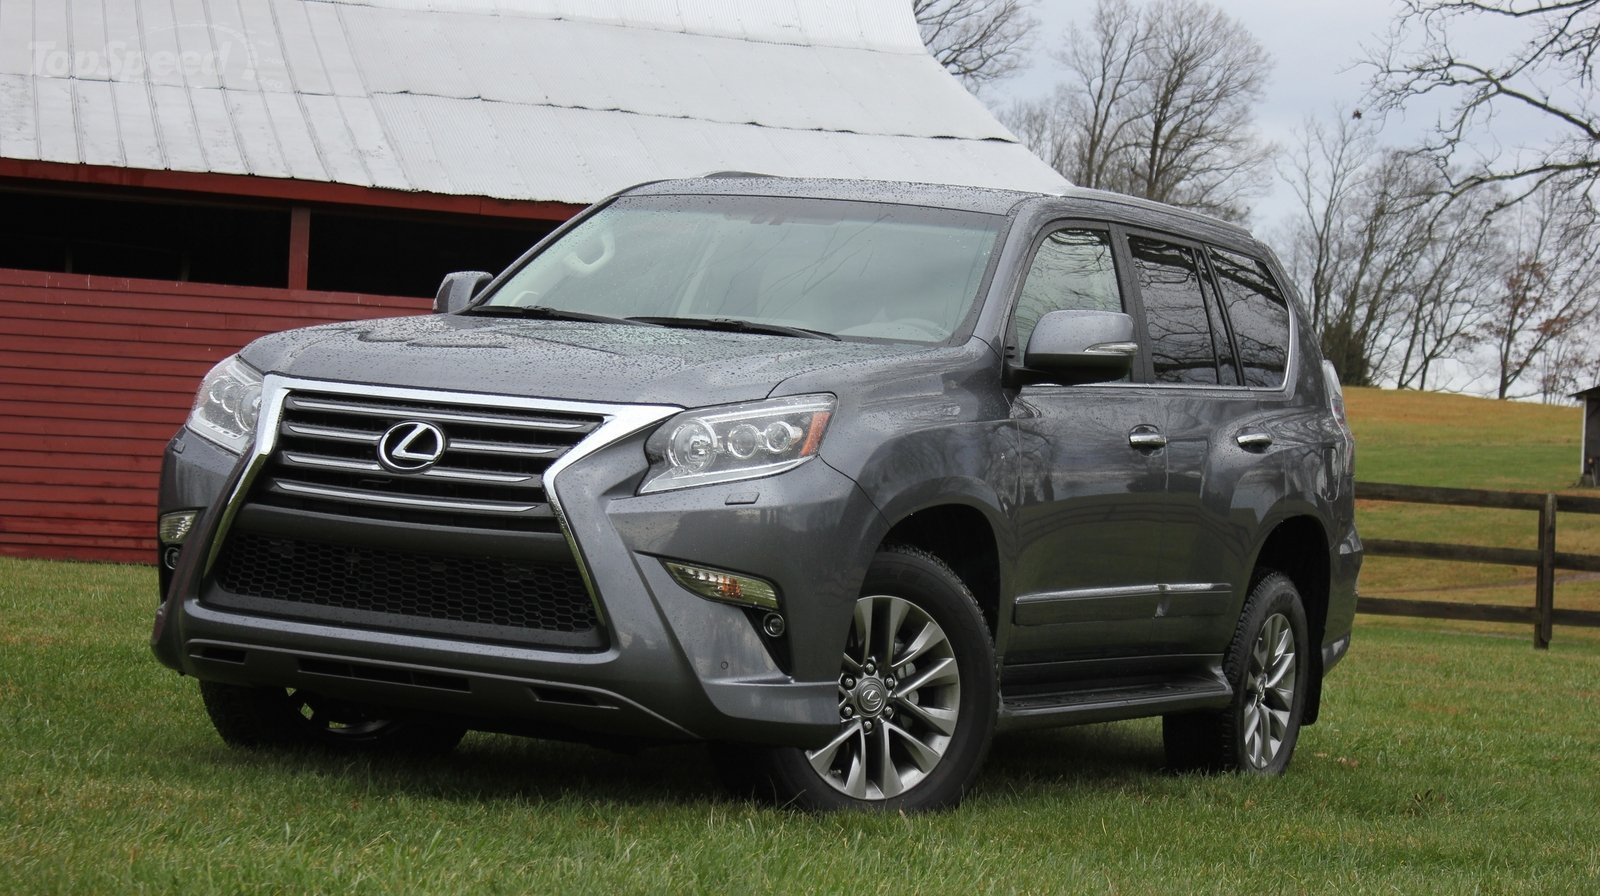 2015 lexus gx 460 driven picture 608287 car review top speed. Black Bedroom Furniture Sets. Home Design Ideas